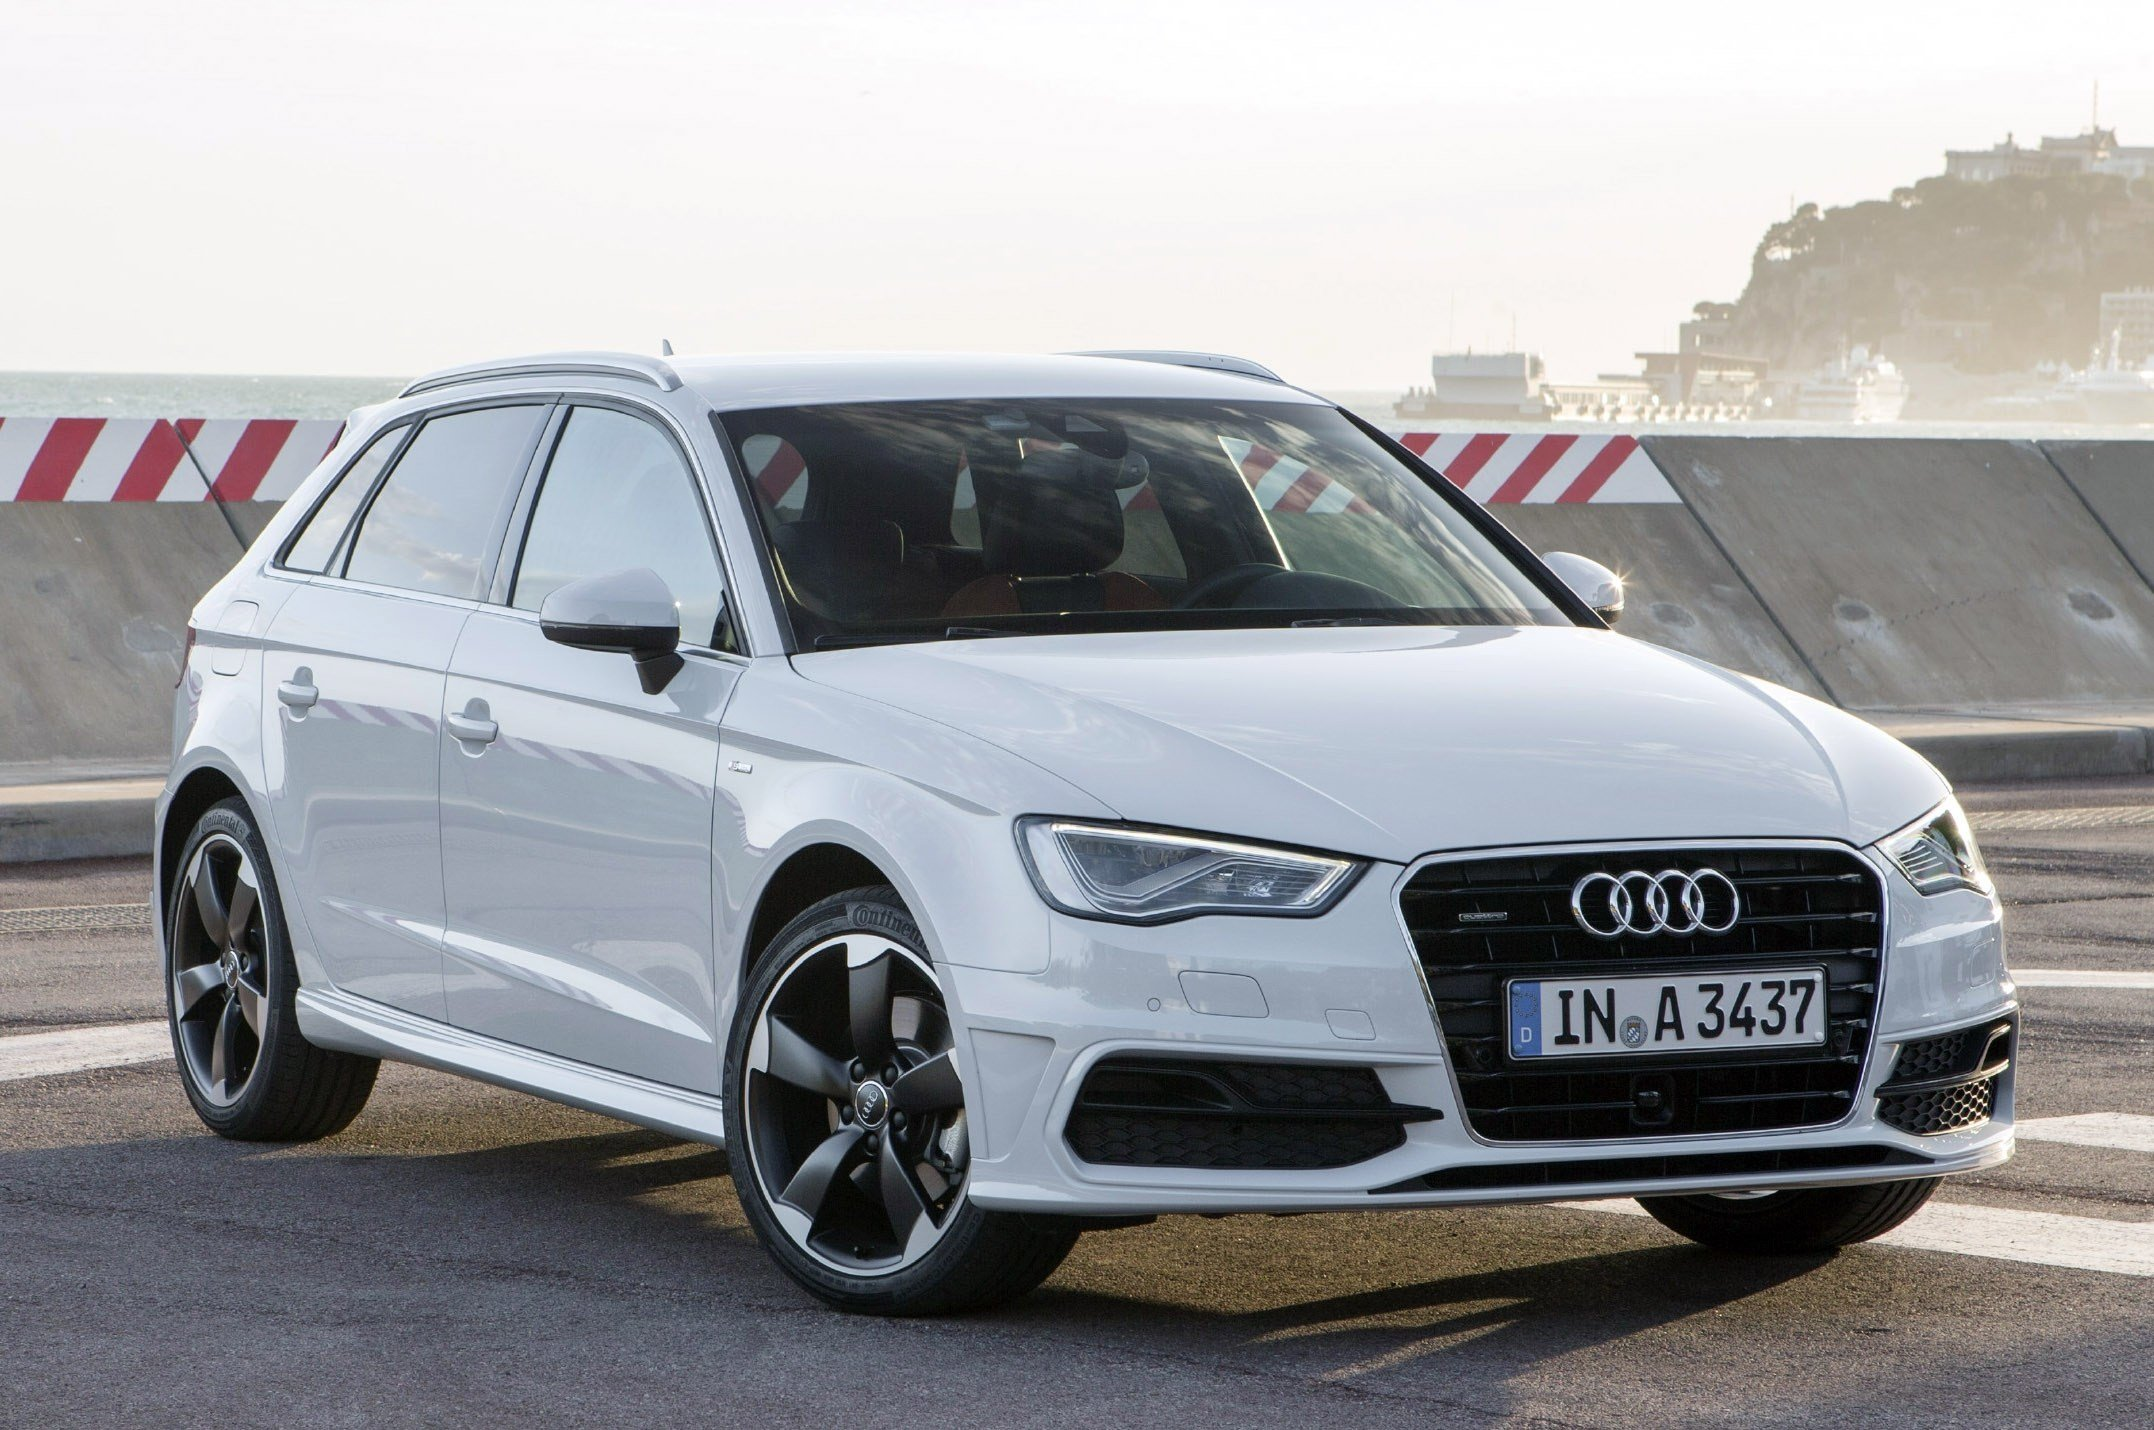 Latest The 2014 Audi A3 The Cars Avenue Free Download